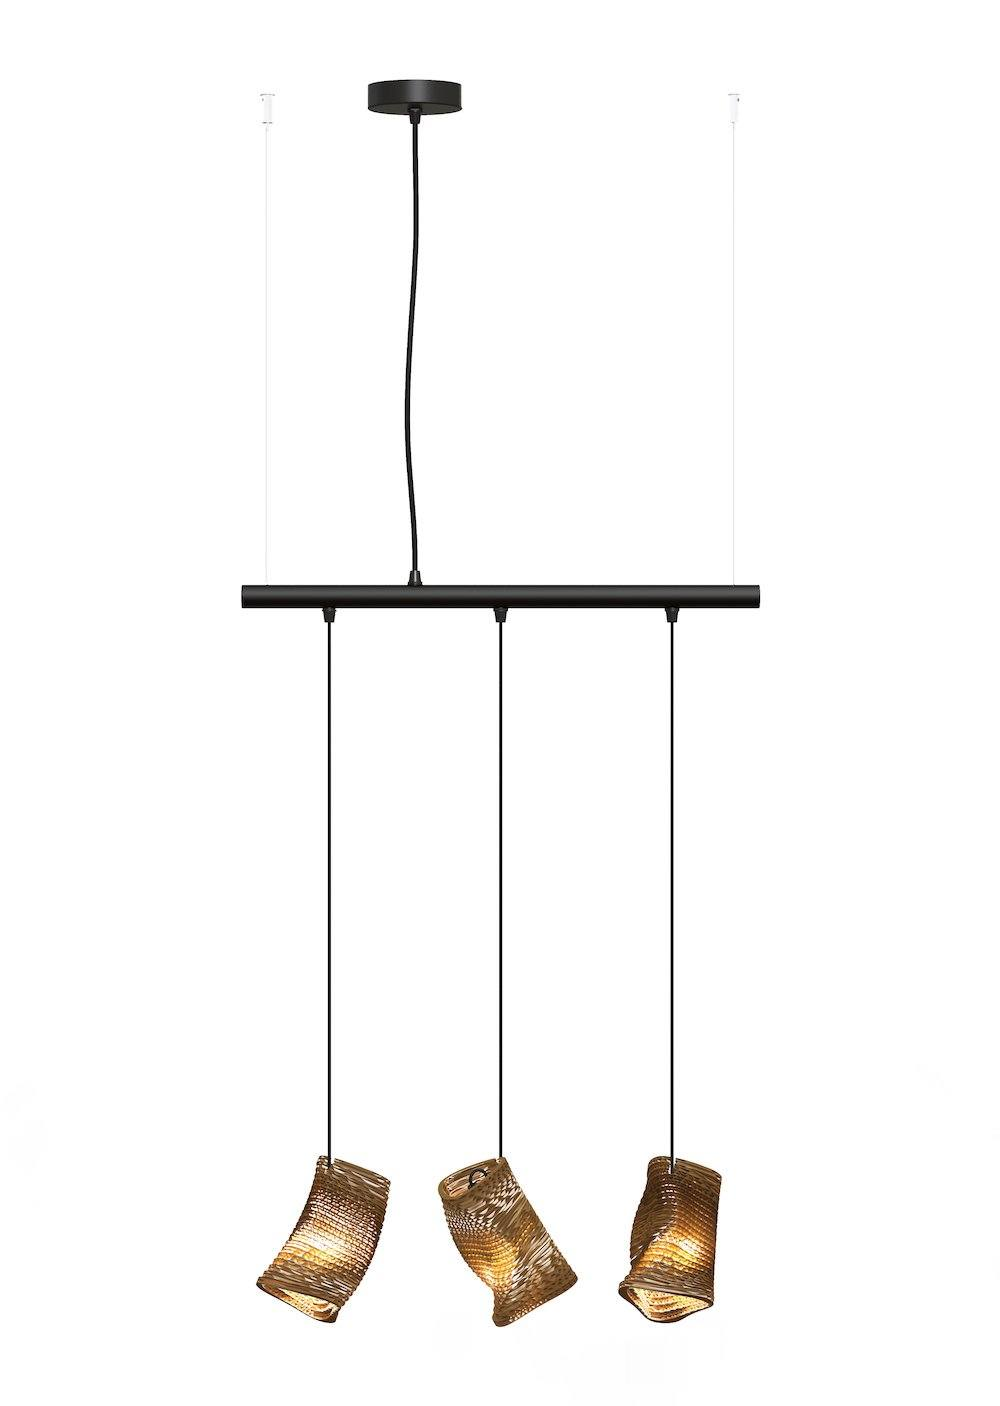 Moa Linear3 Pendant Light | Banbayu